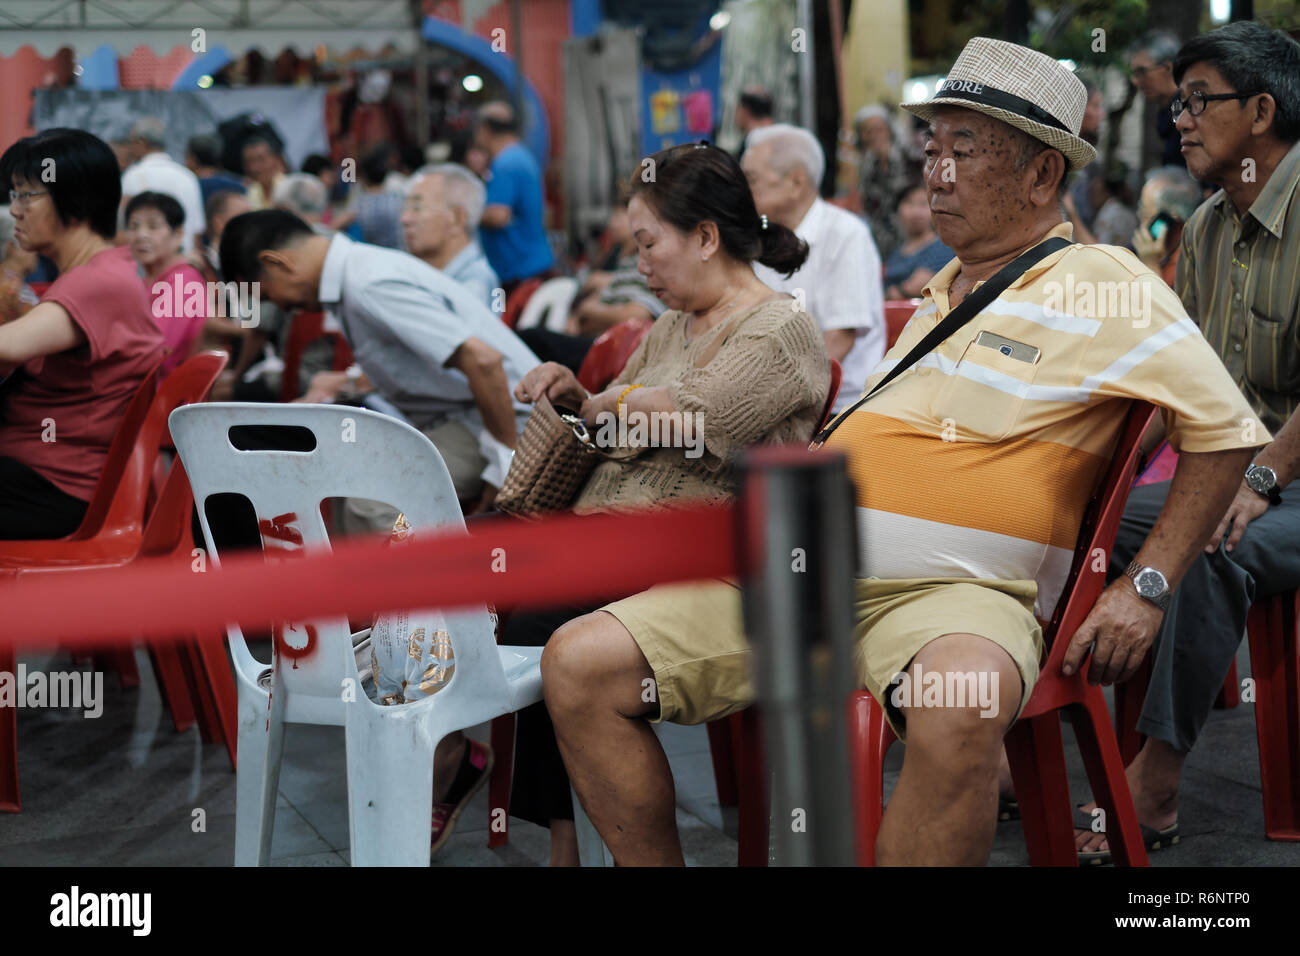 Senior Singapore citizens, ethic Chinese, watching a traditional Chinese program in an open-air venue at Telok Ayer Square, Chinatown Singapore - Stock Image